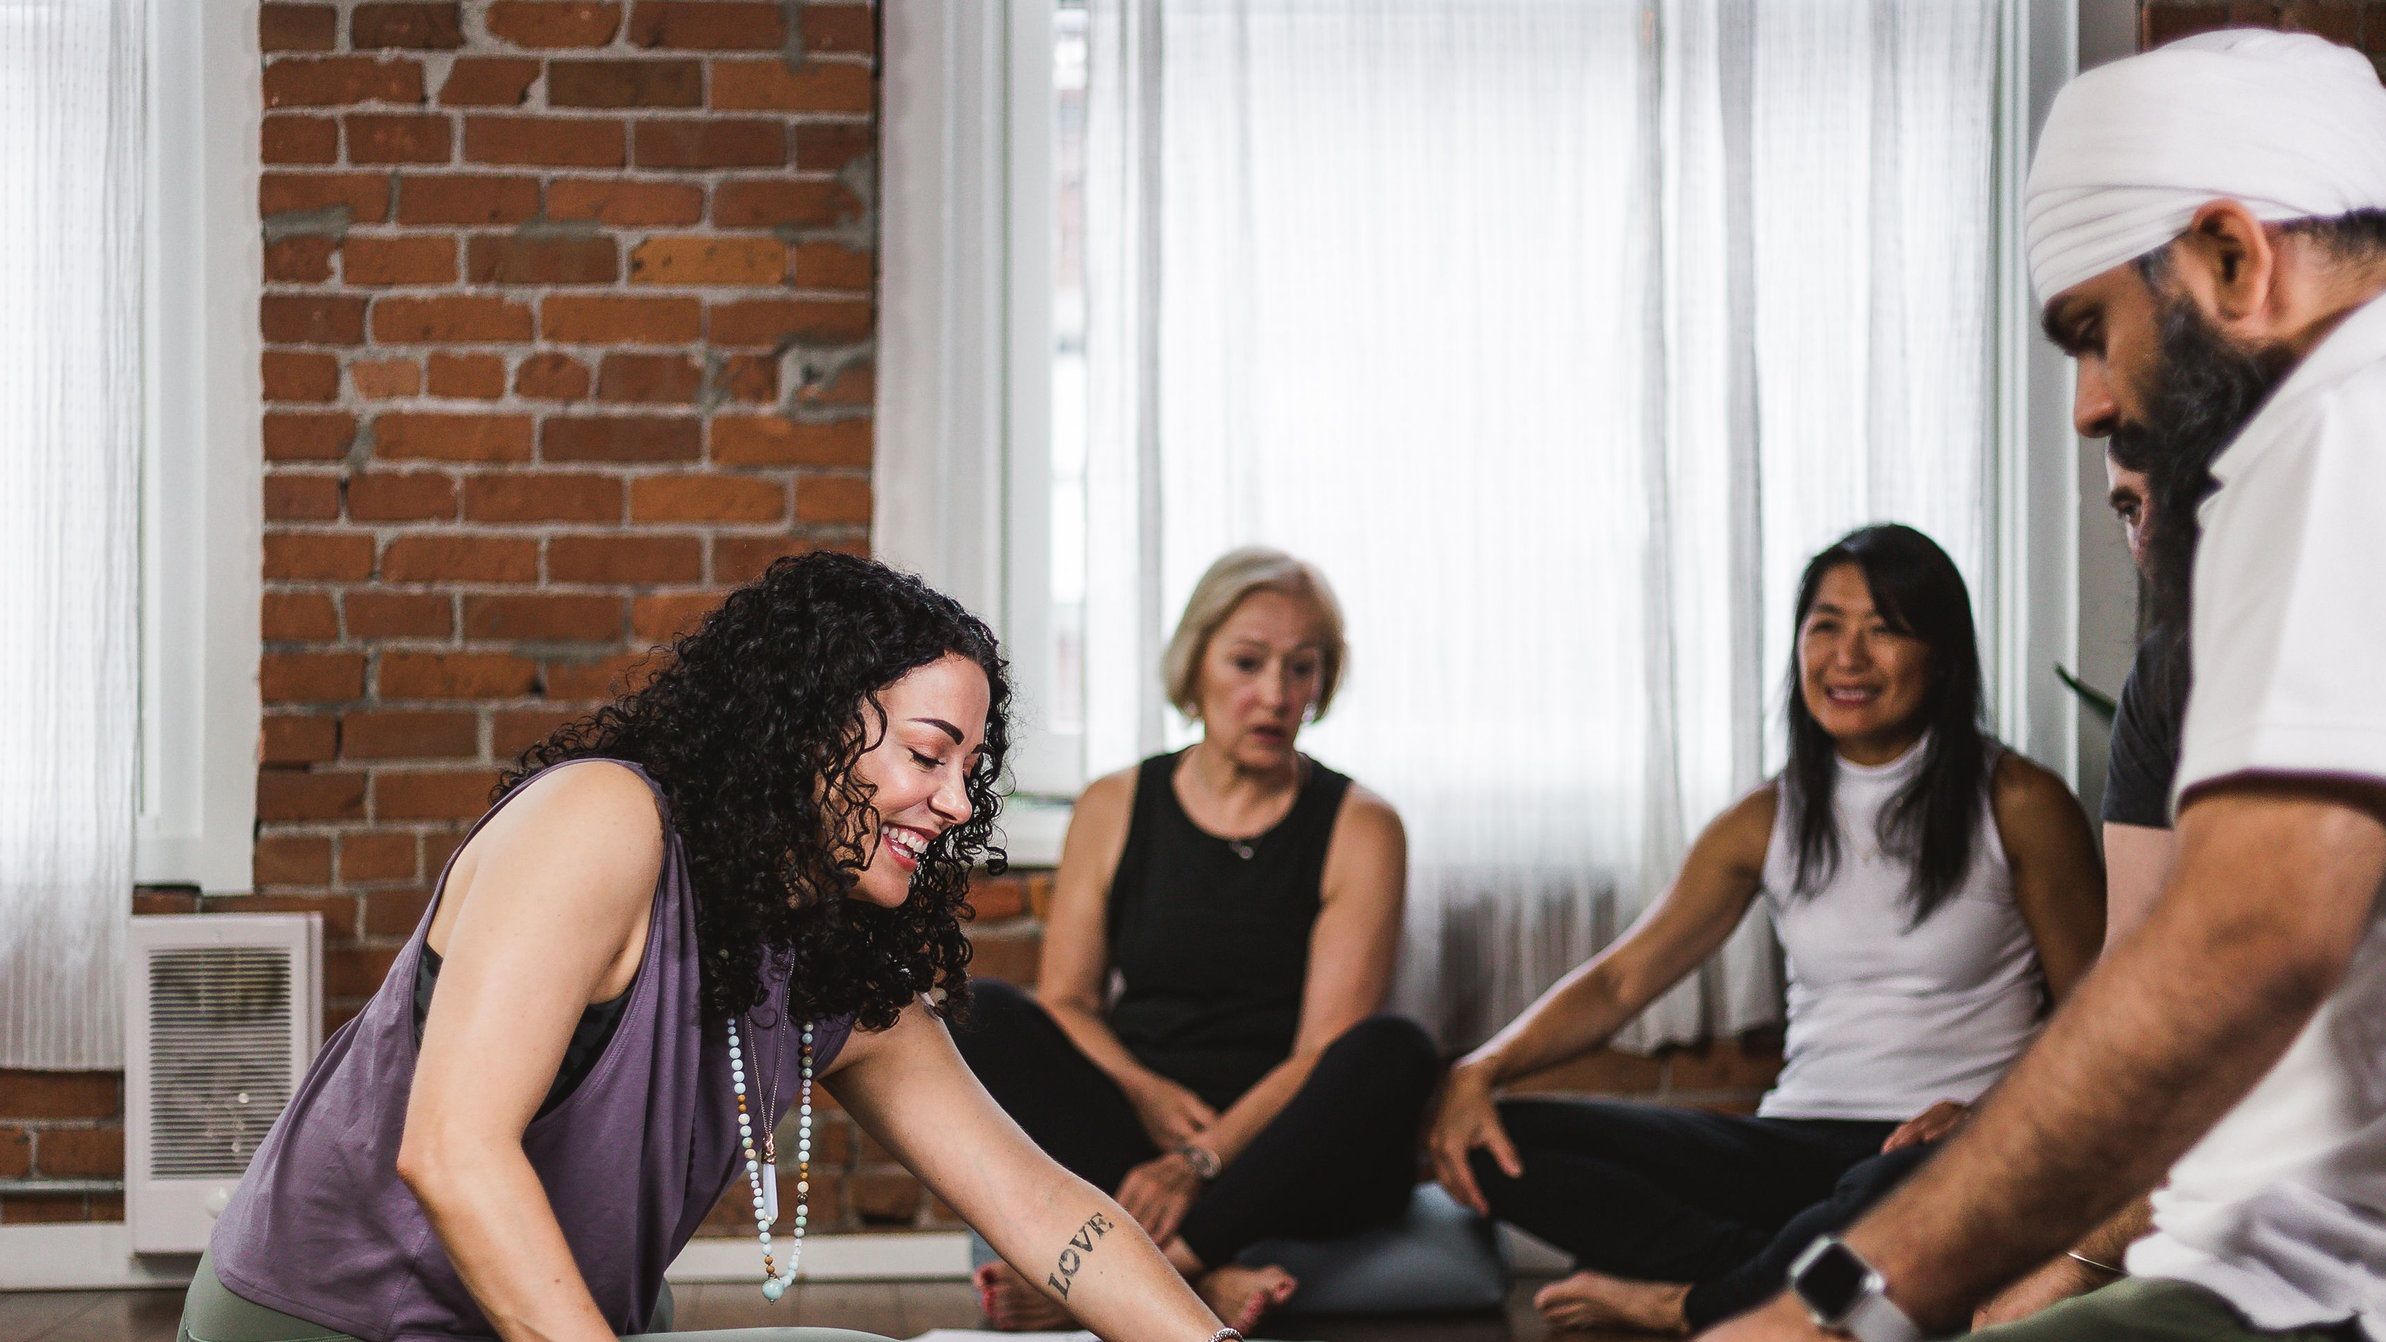 Kindness, acceptance and integrity are the roots of our studio's community - When you walk in through our doors, you will always be greeted with a smile. When you practice yoga with us, you will always be cared for by our experience instructors. Your comfort and happiness is our number one priority at Jai yoga studio.